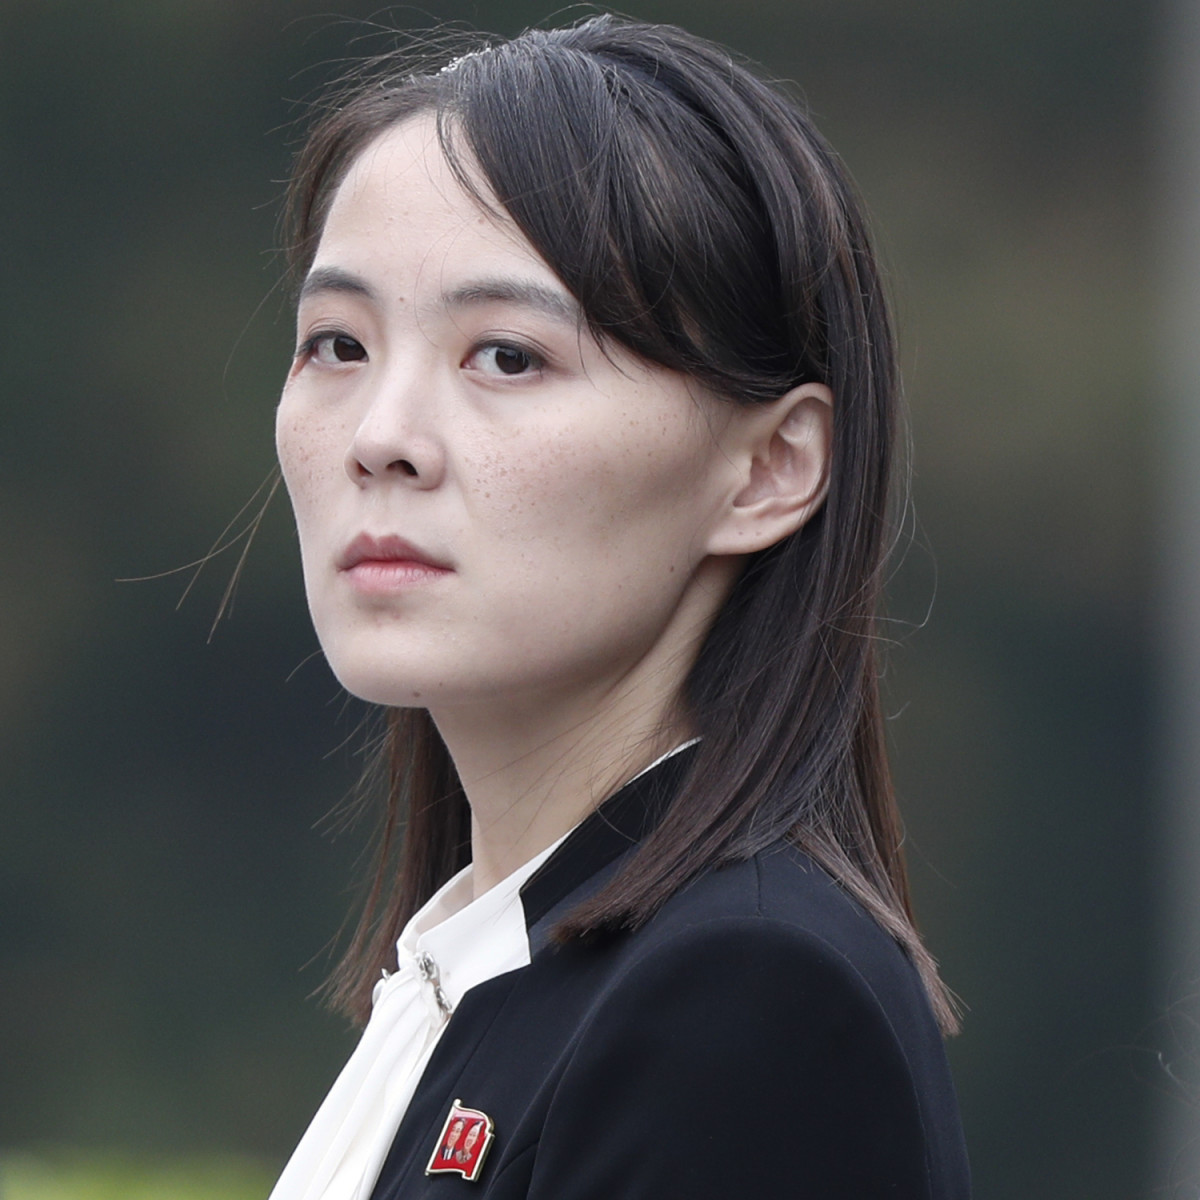 All You Need To Know About Kim Yo Jong, Kim Jong Un's Sister And Possible Successor In North Korea